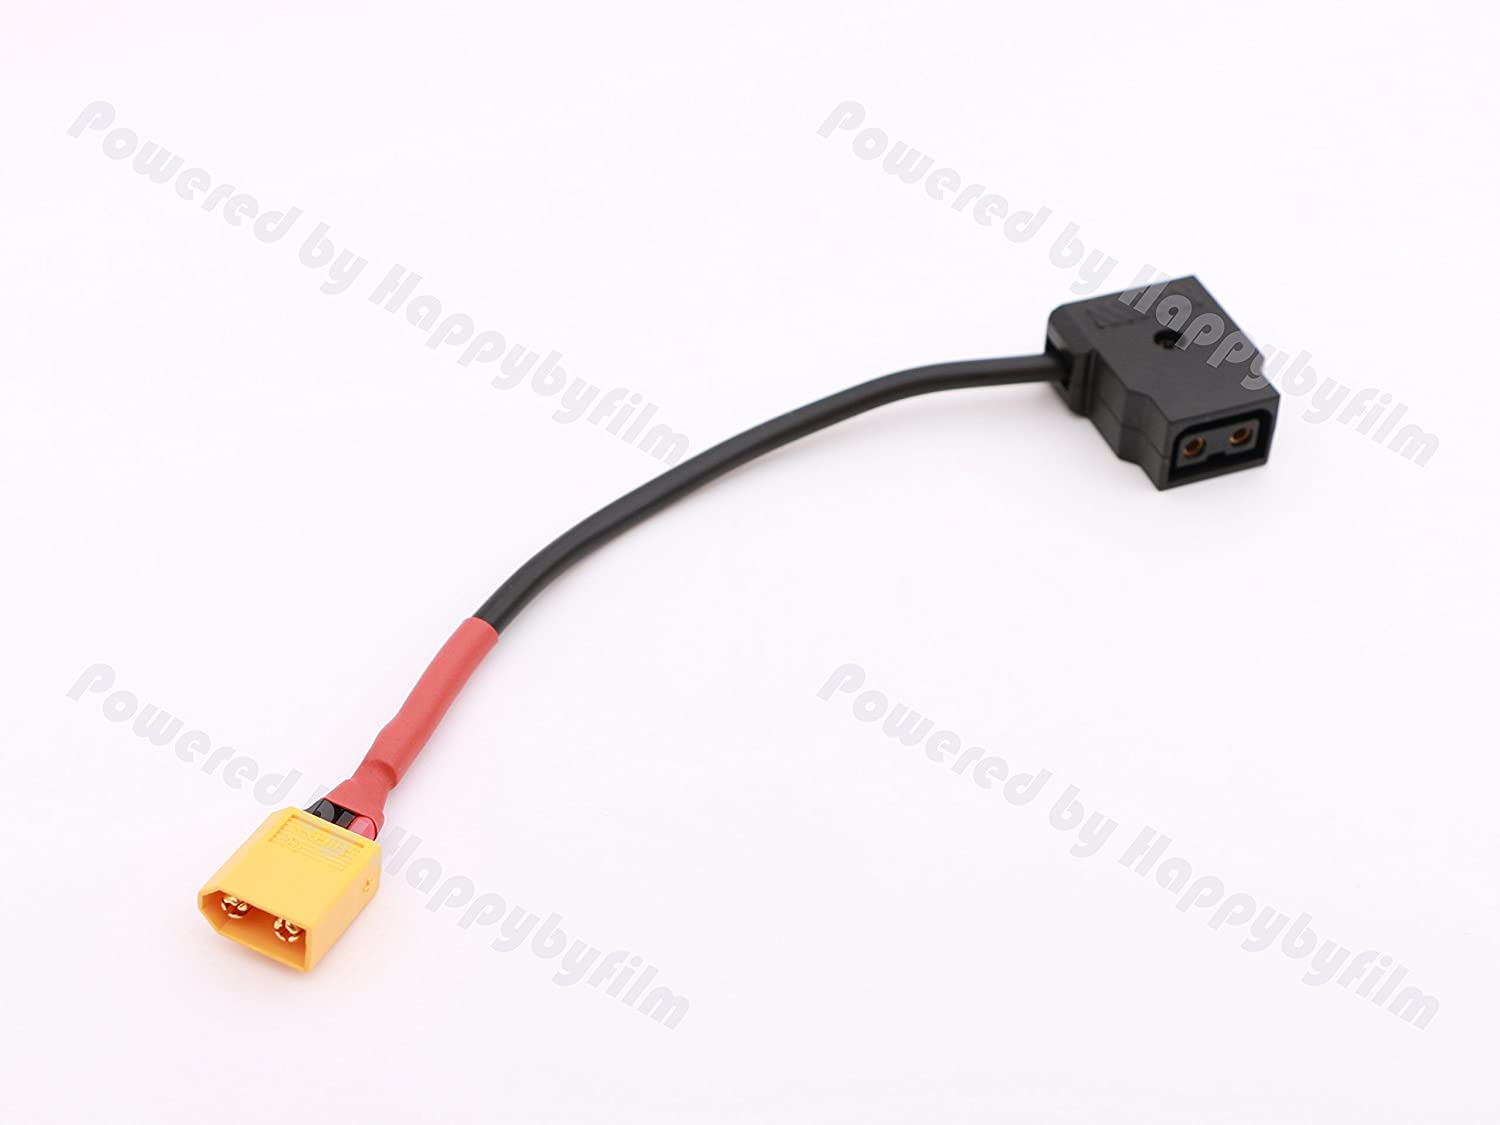 D-Tap Female to XT60 Male Adapter Power Cable for Anton Bauer Battery/& Camera